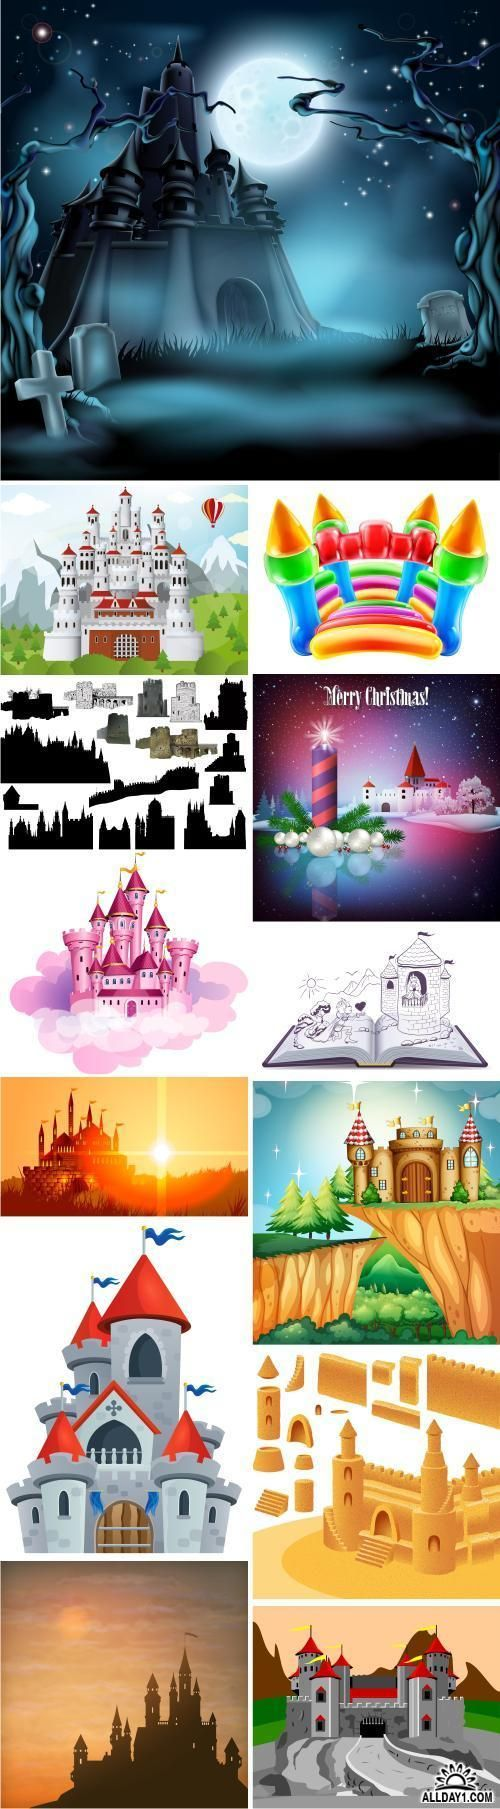 Collection of castle fort icon silhouette of a medieval tower building vector image - 25 EPS